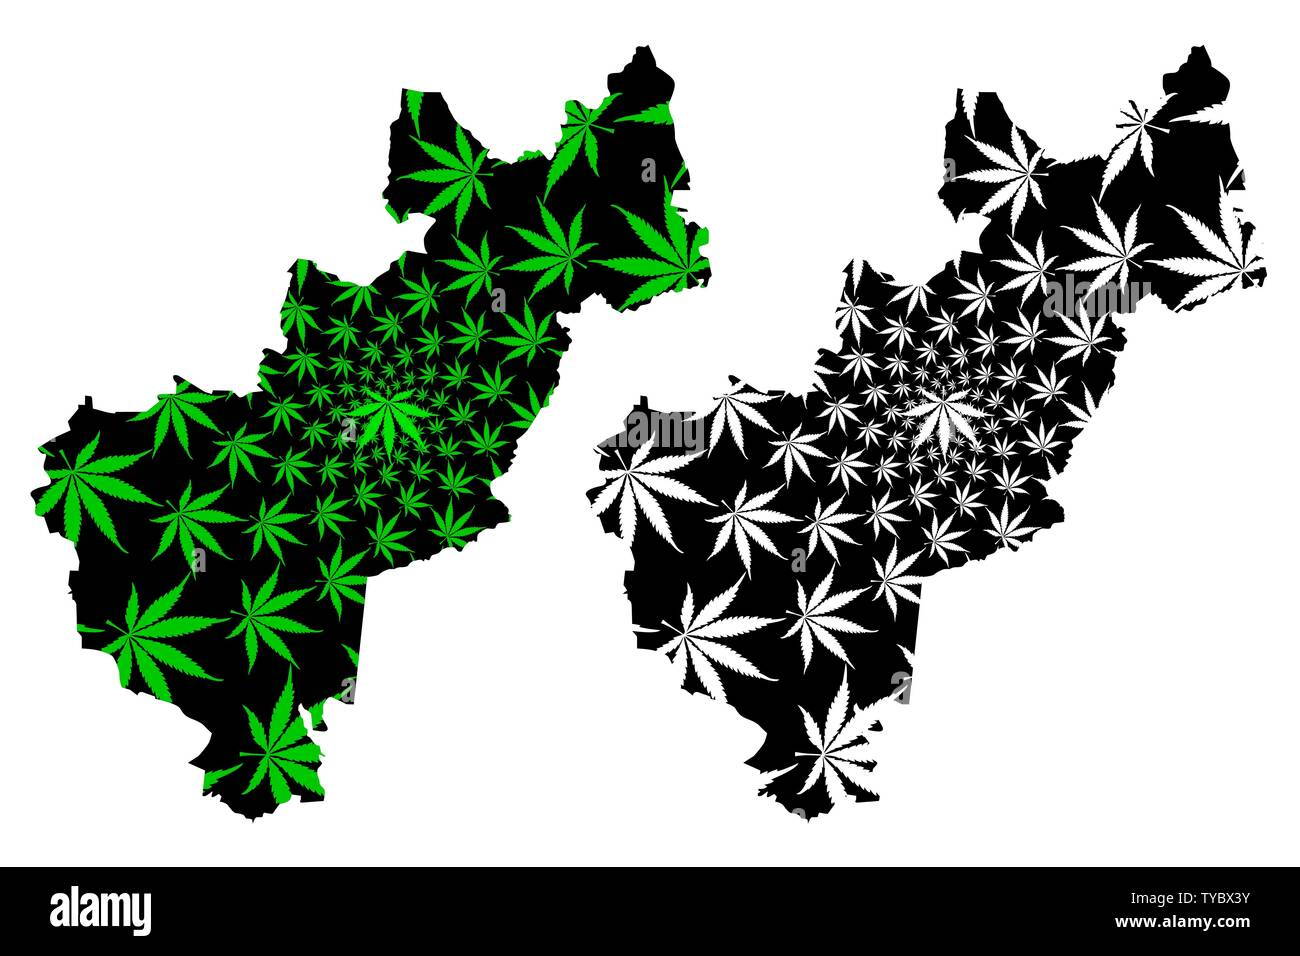 Queretaro (United Mexican States, Mexico) map is designed cannabis on